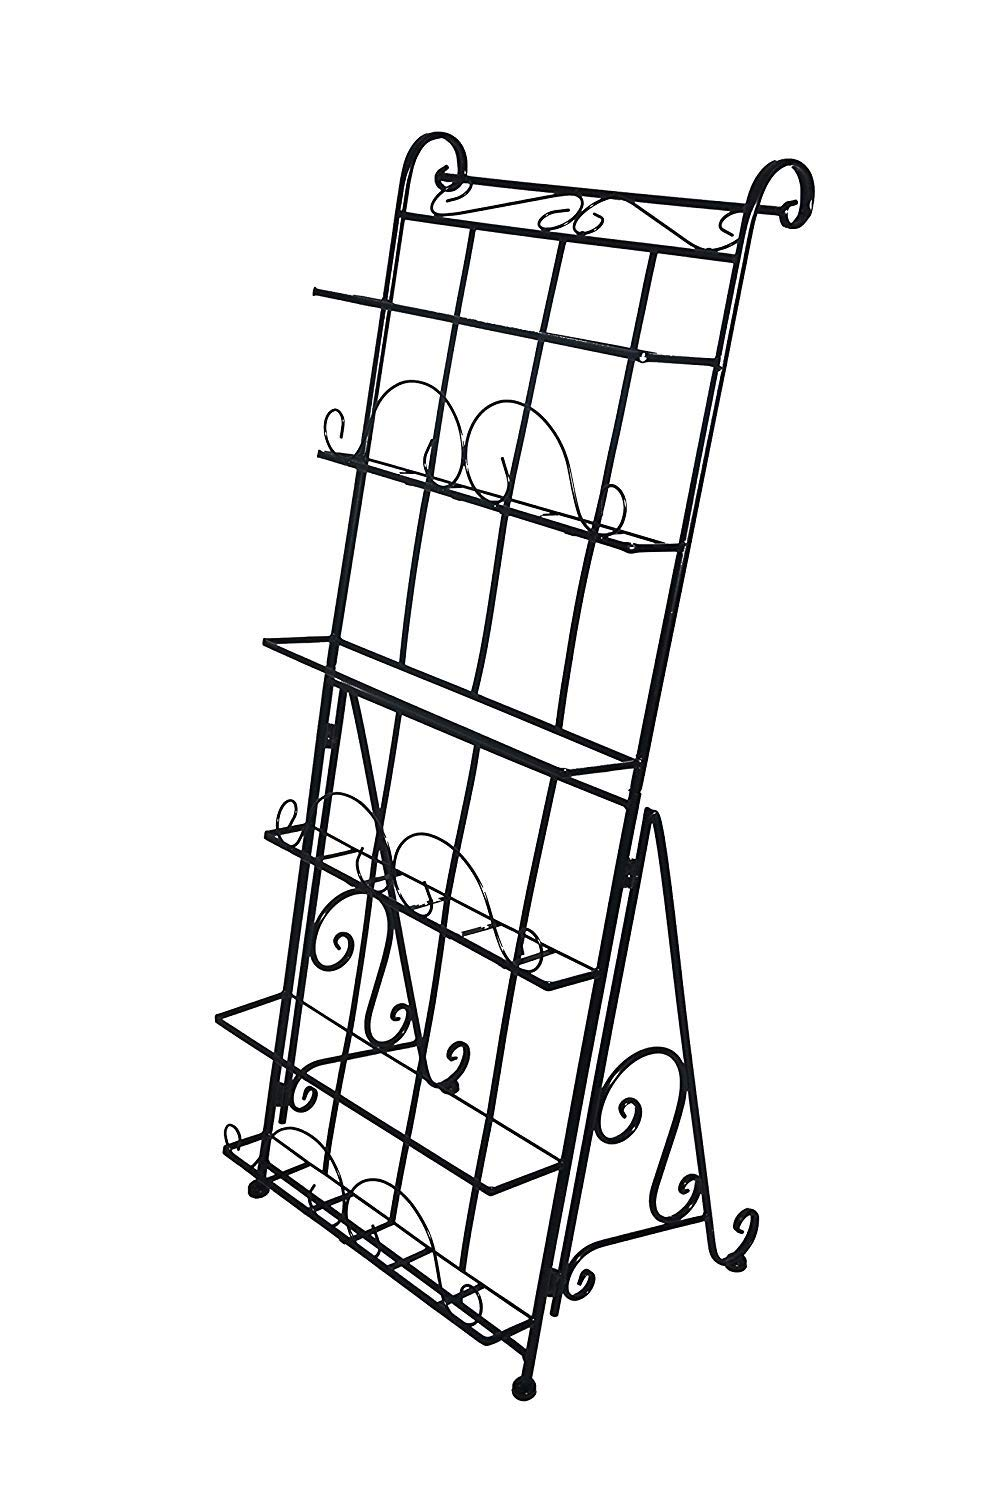 AXDT Floor Standing Magazine Rack Holder Organizer, Brochure Magazine Catalog Literature Display Holder Rack, Elegant Design Metal Rack for Home, Trade Show, Office and Retail Store by AXDT (Image #2)